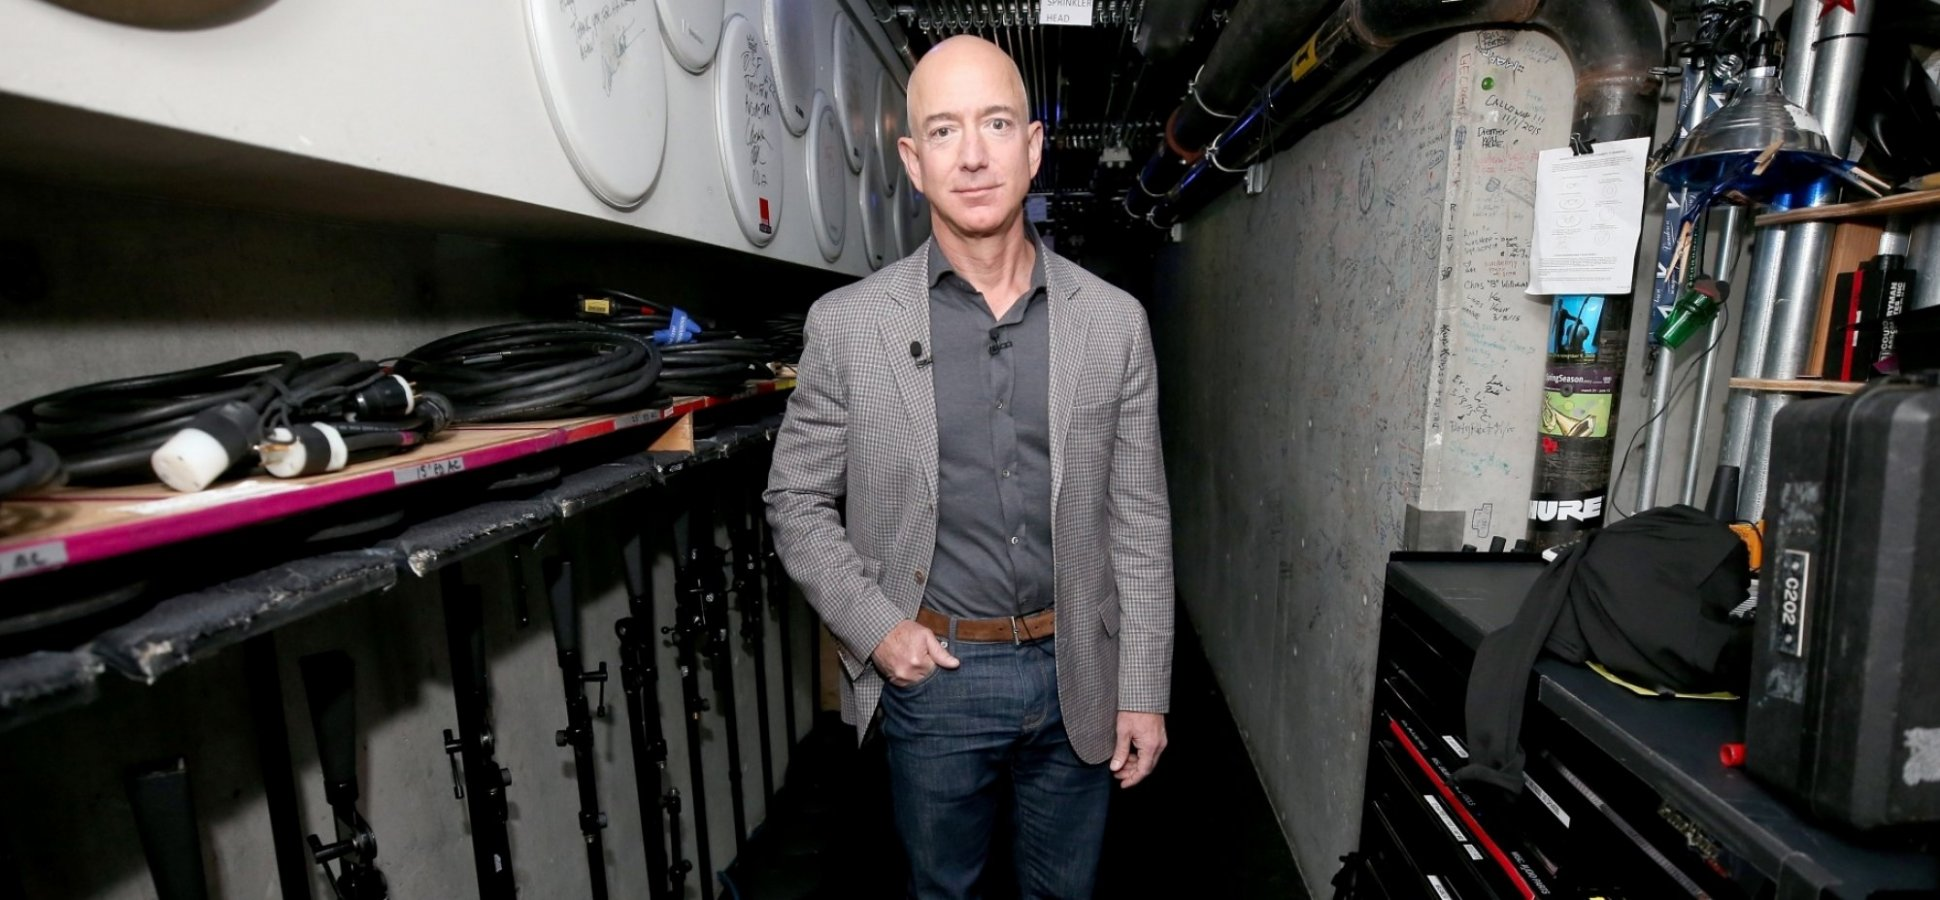 It Took Just 1 Sentence for Jeff Bezos to Show Why the National Enquirer Blackmail Scandal Is a Bigger Danger for Amazon Than People Want to Admit | Inc.com